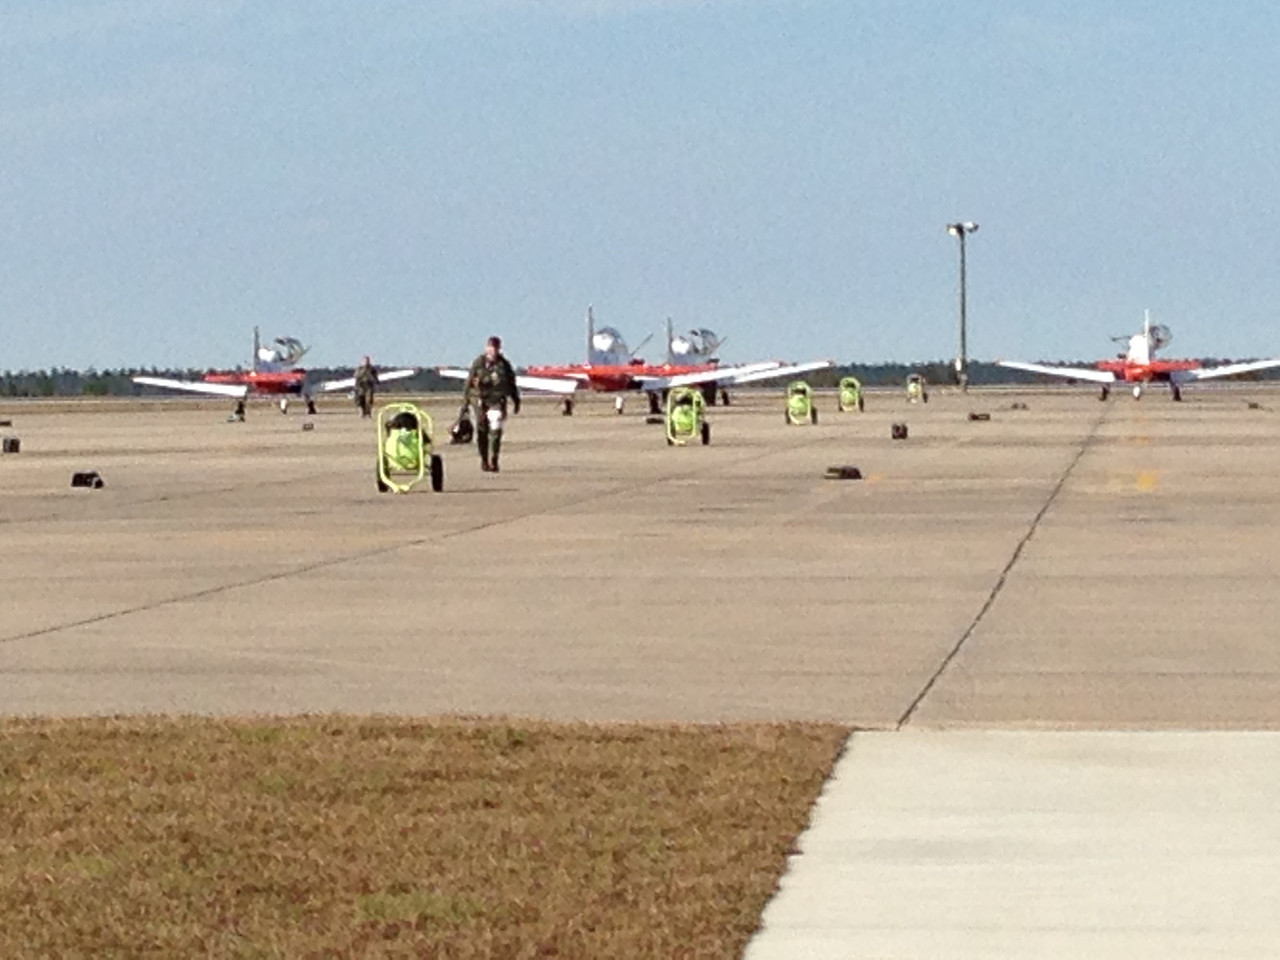 Nick walking back off the flight line to meet me at the line shack.